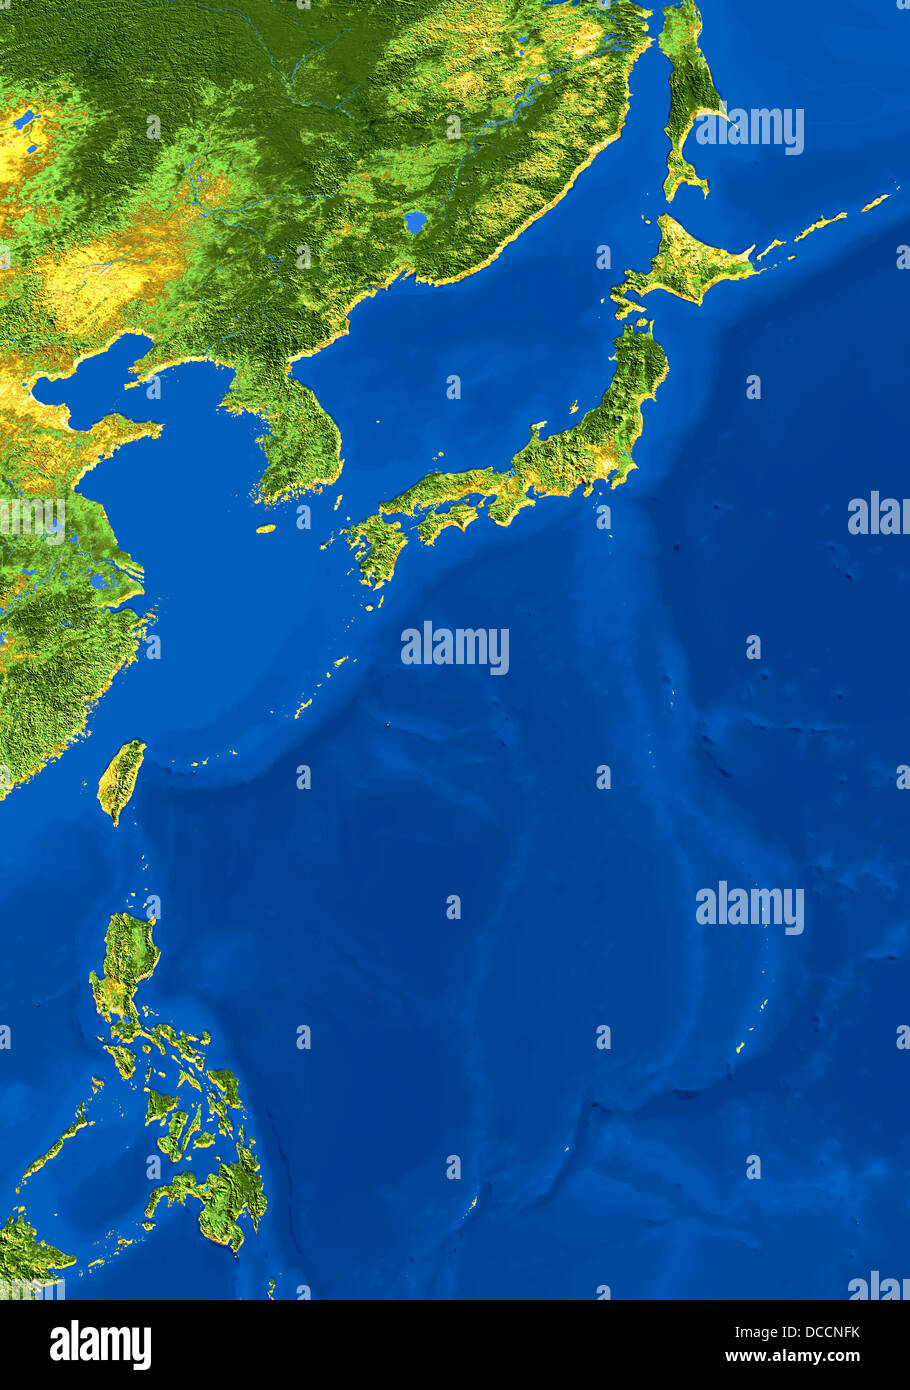 Avhrr satellite image map of japan n korea s korea taiwan the avhrr satellite image map of japan n korea s korea taiwan the phillippines and coastal china with topographic relief gumiabroncs Images